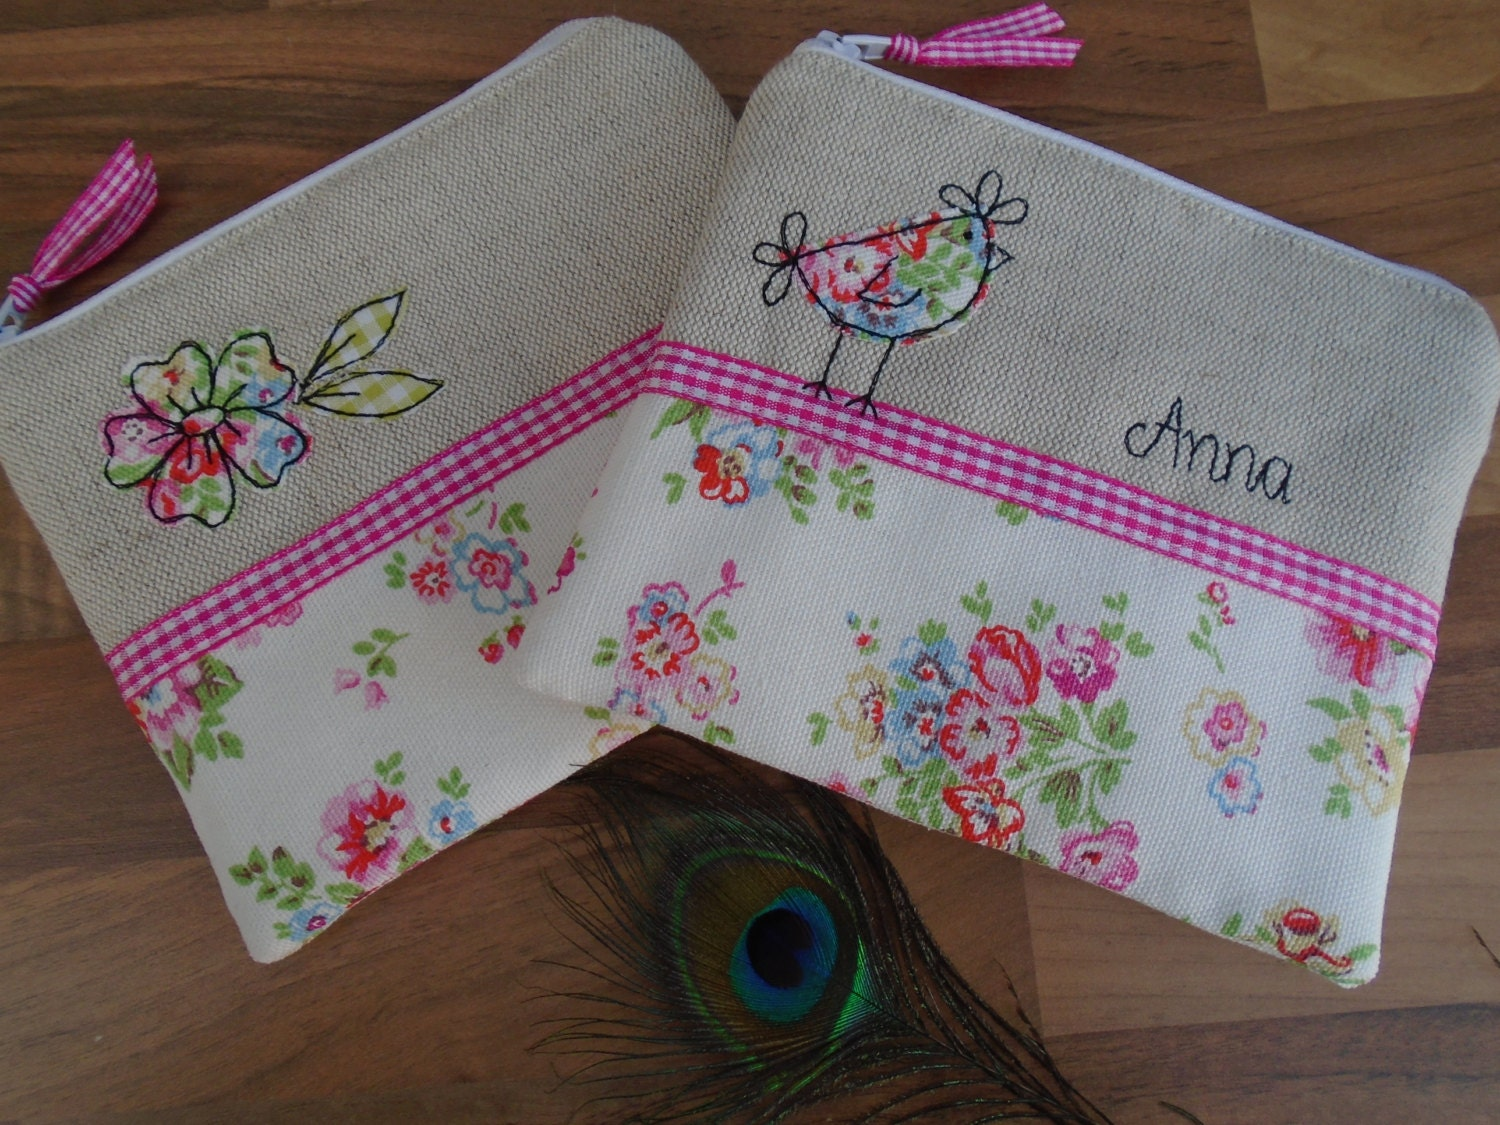 Handmade Small Cosmetic Makeup Bag or Purse with option to personalise Choice of Hen or Flower Applique Cath Kidston White Floral fabric